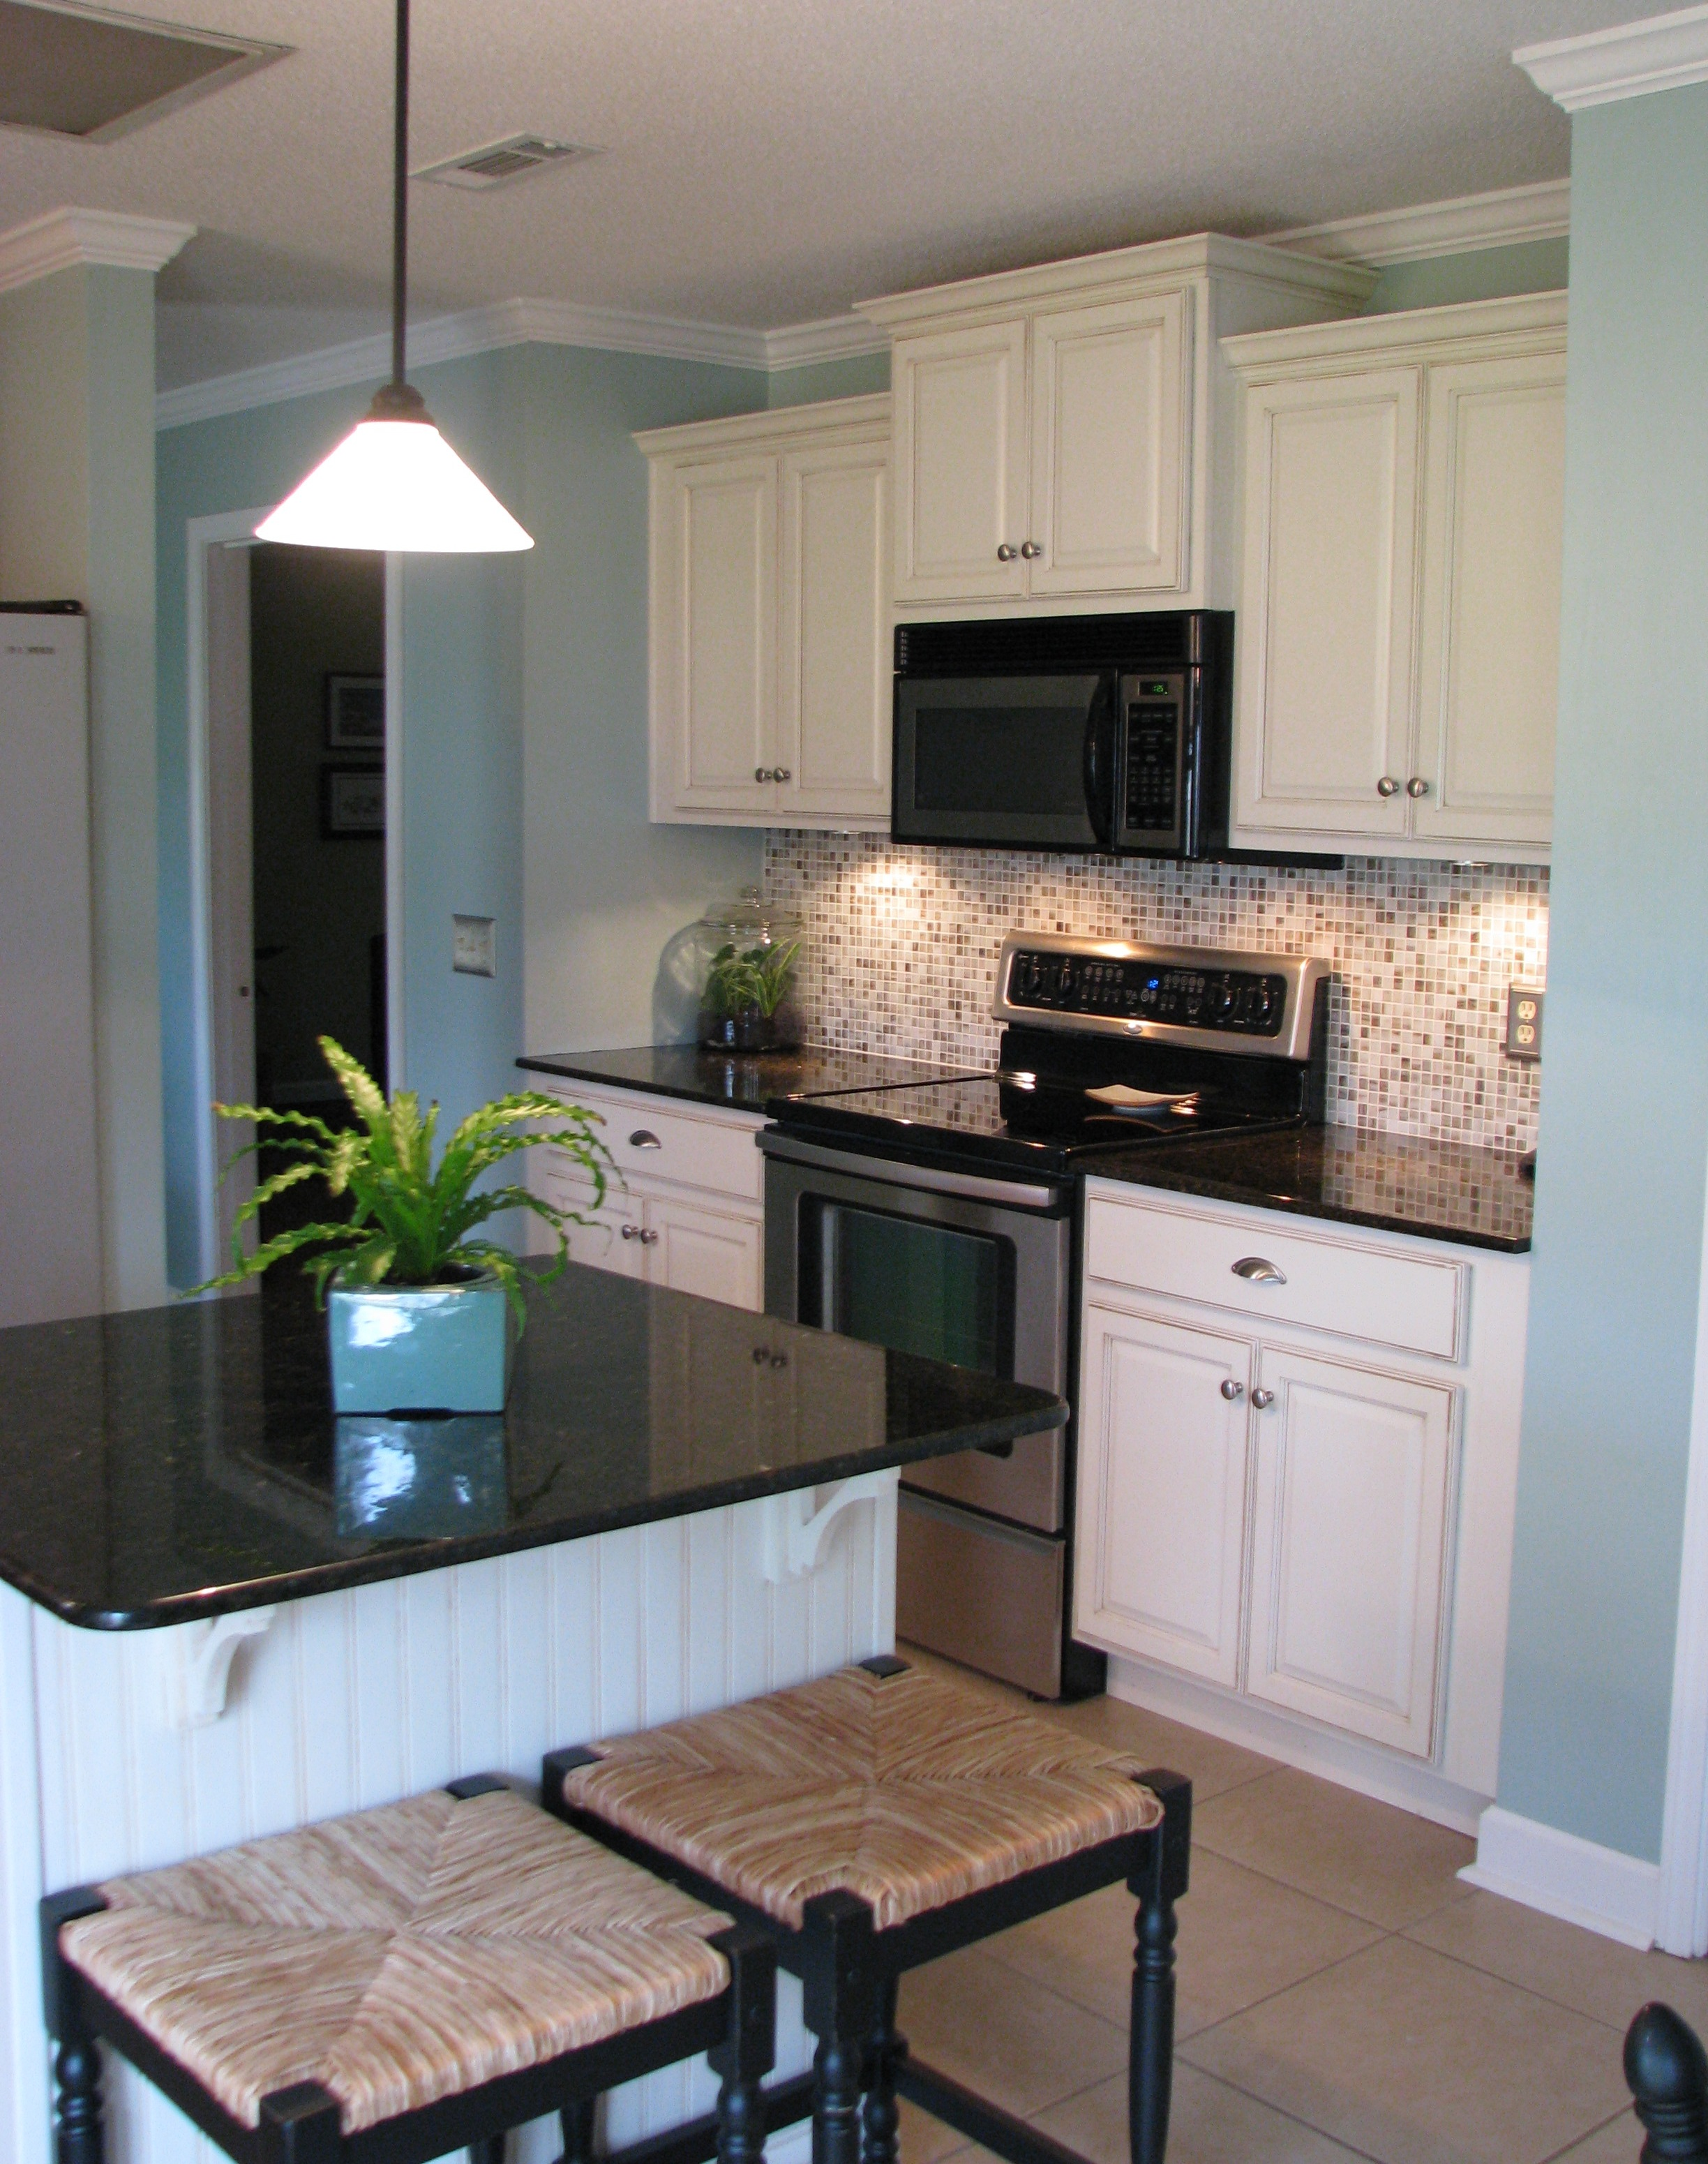 5000 Kitchen Remodel Collection Kitchen Remodel For $5000